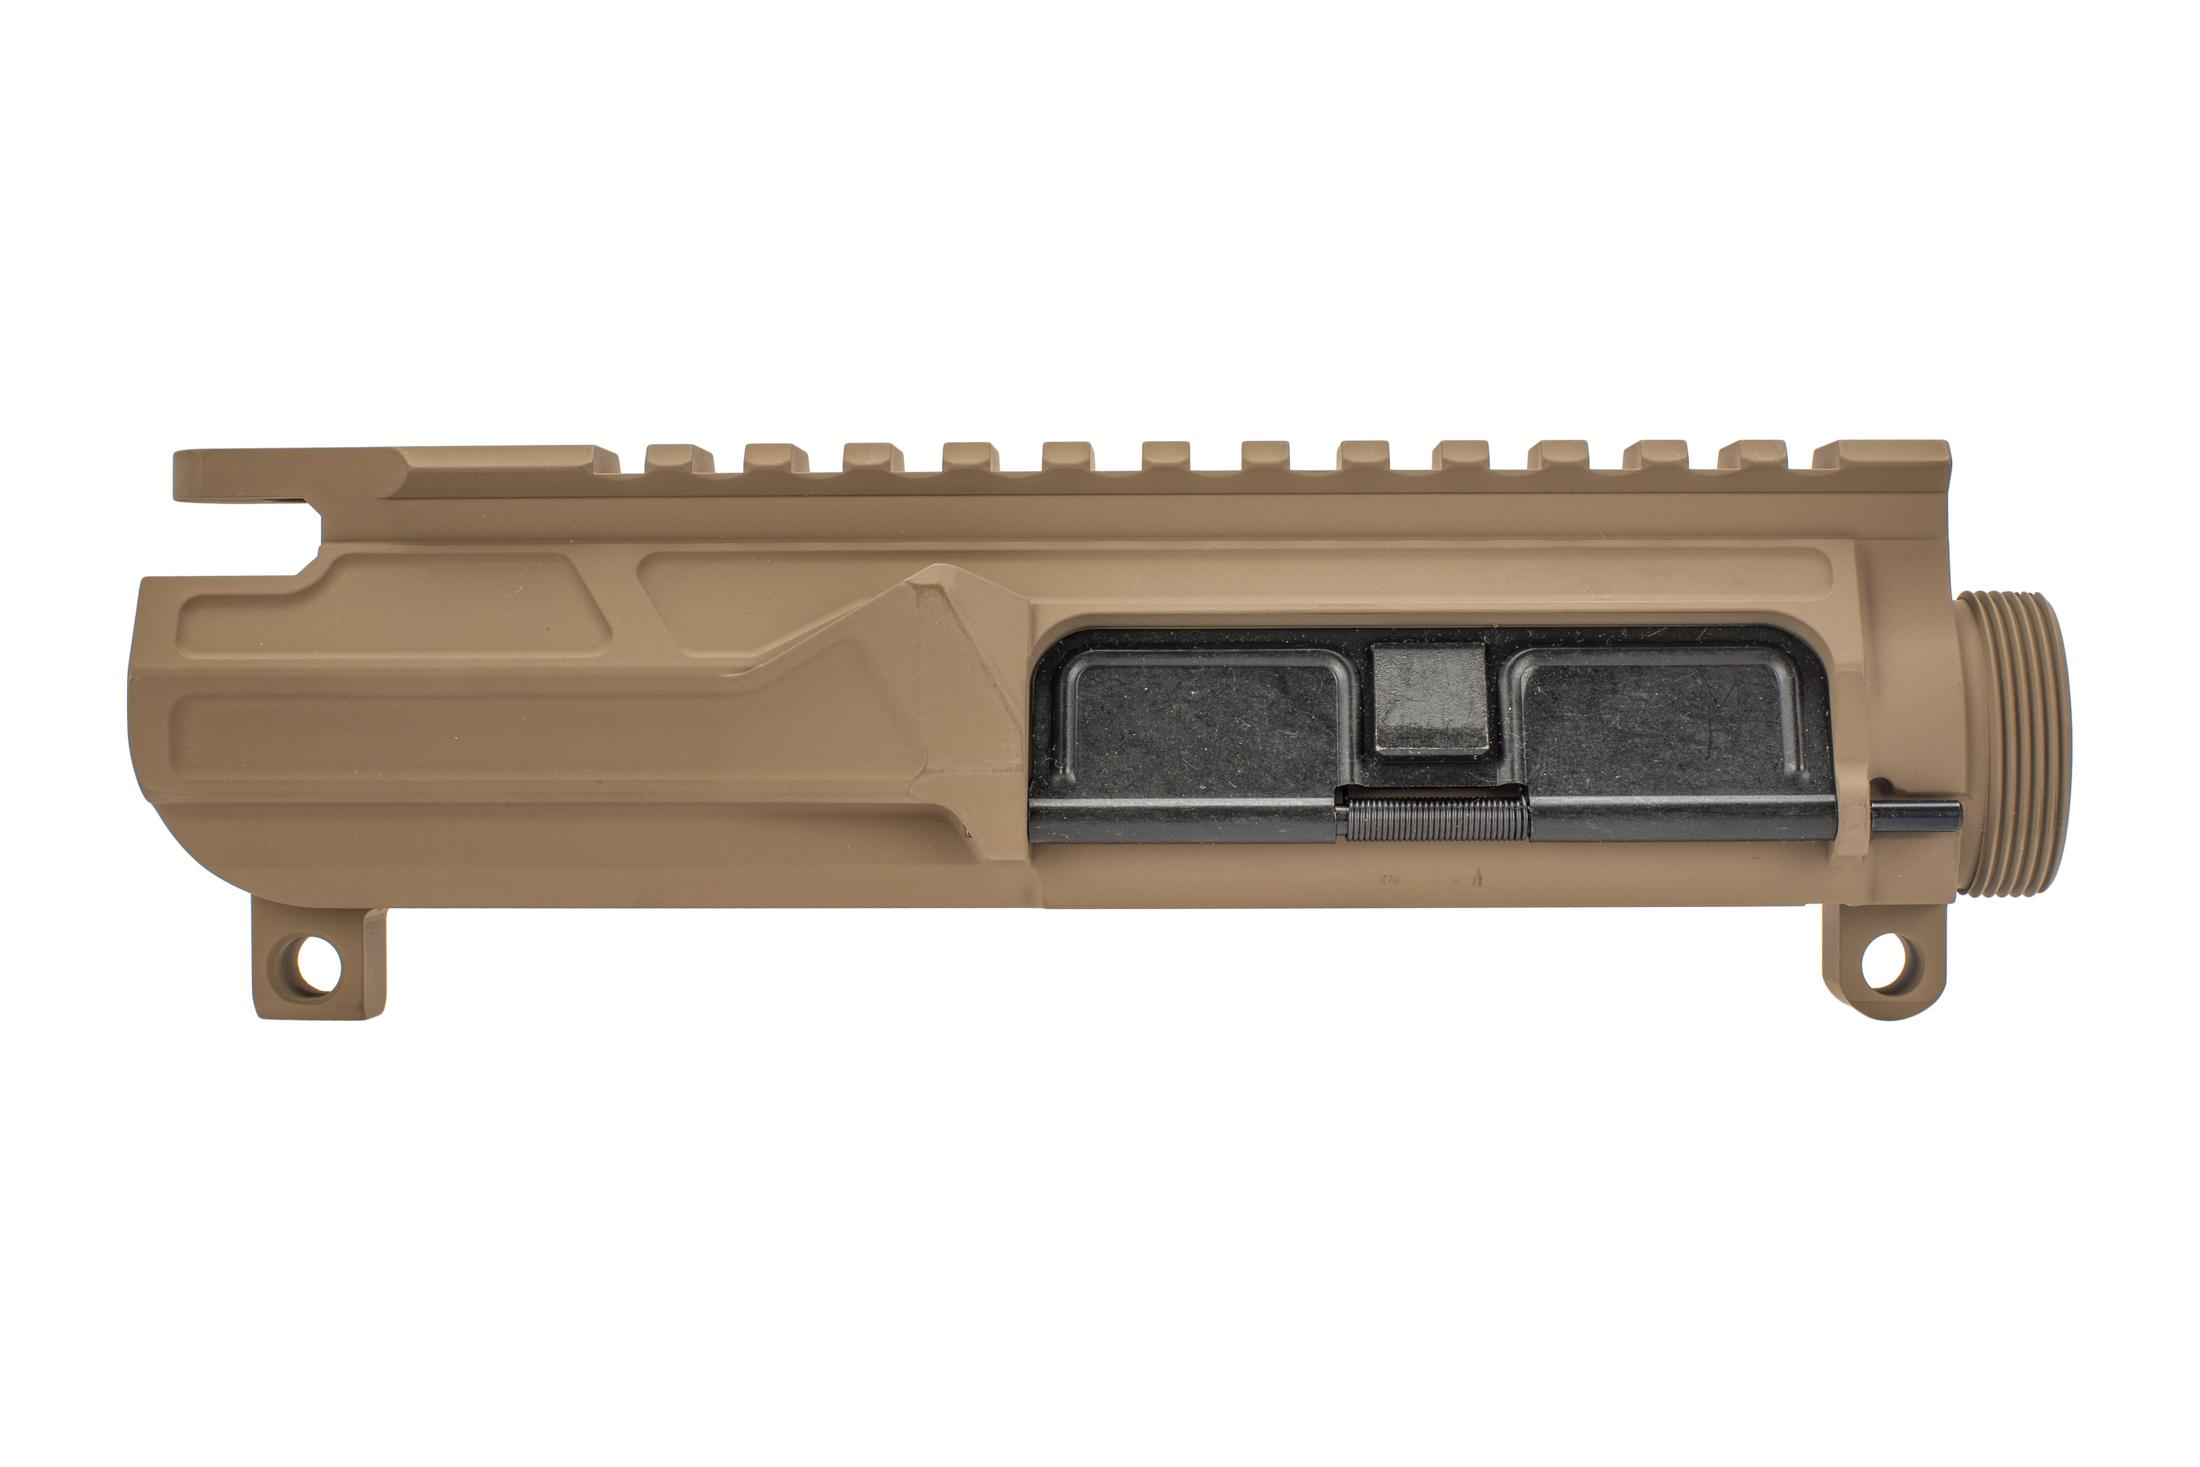 Odin Works Billet Upper Receiver FDE features a slick side design